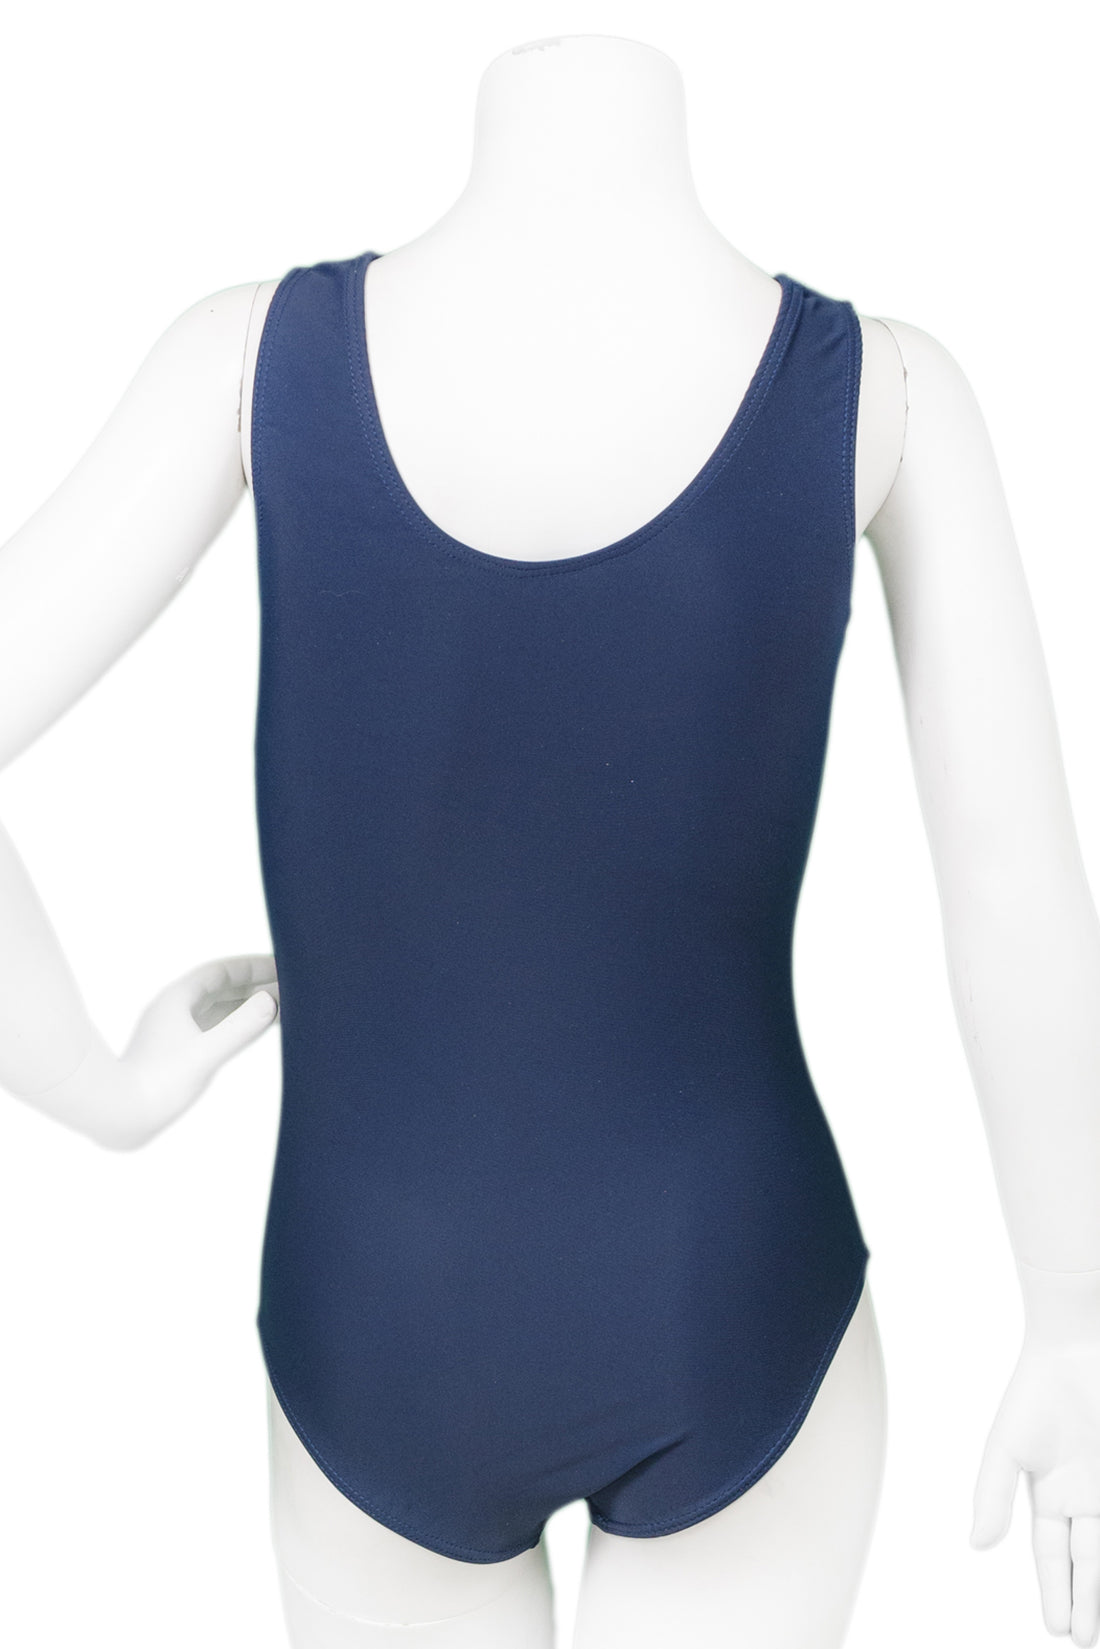 Navy NYC Skyline Tank Leotard